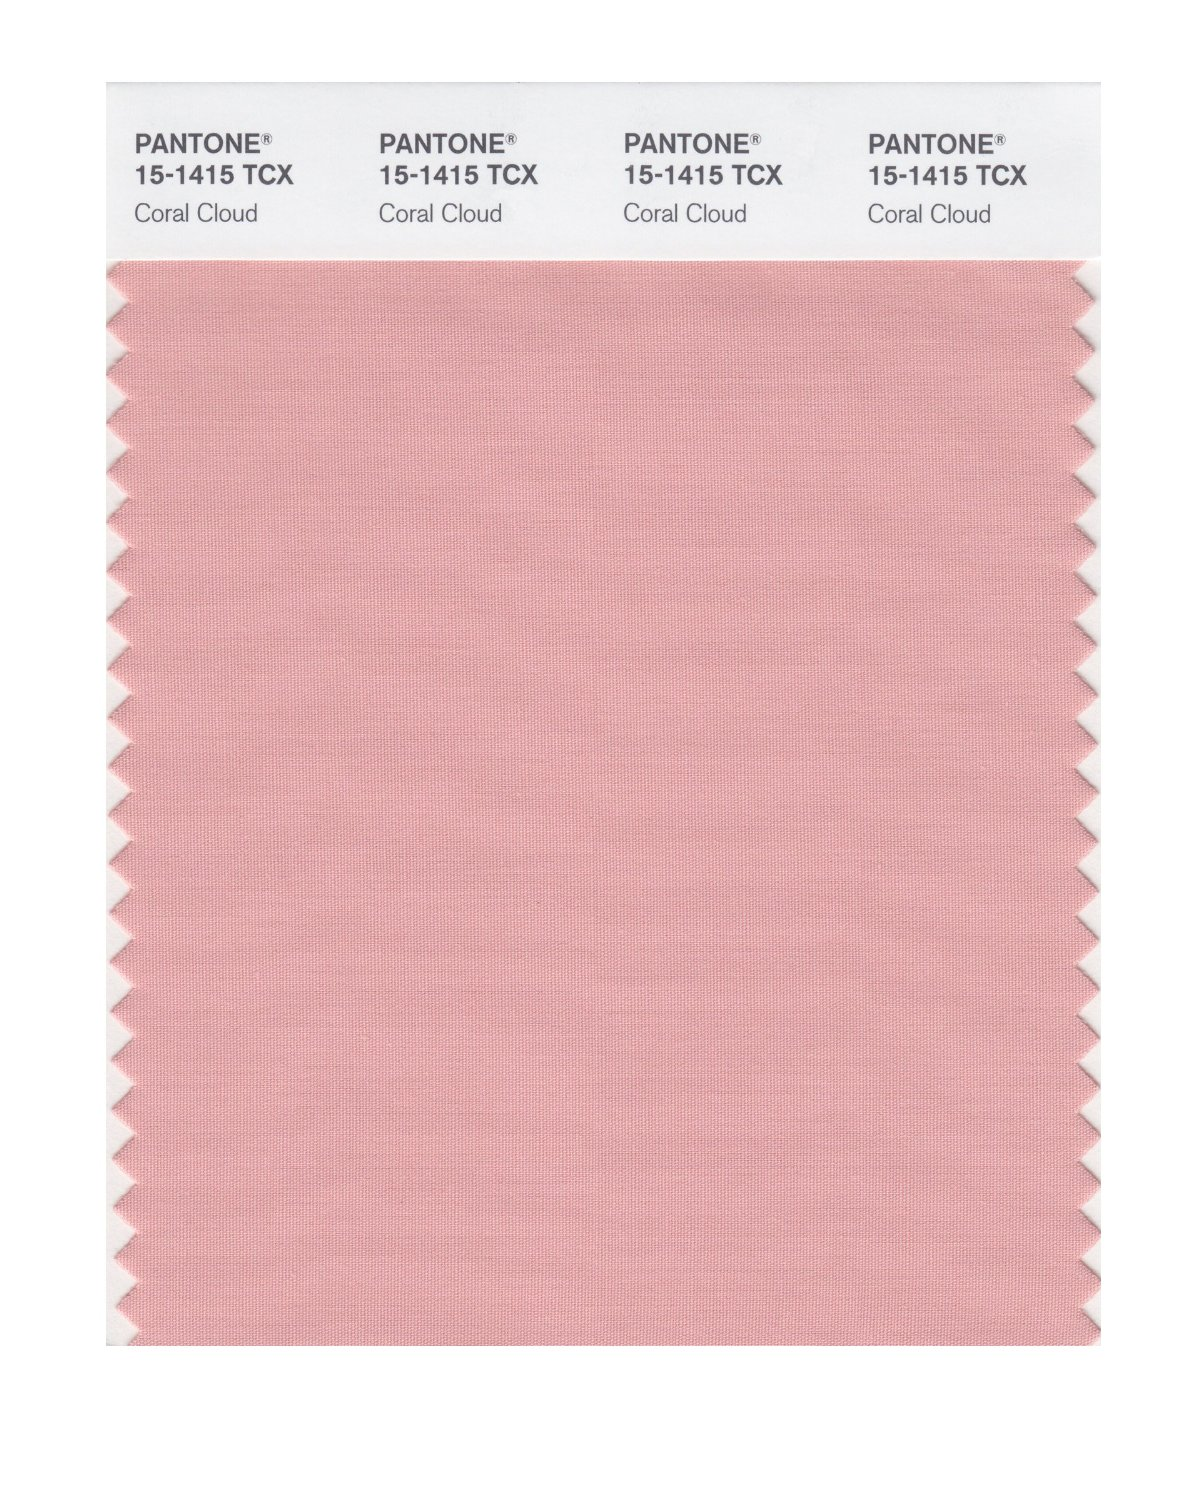 Pantone Smart Swatch 15-1415 Coral Cloud